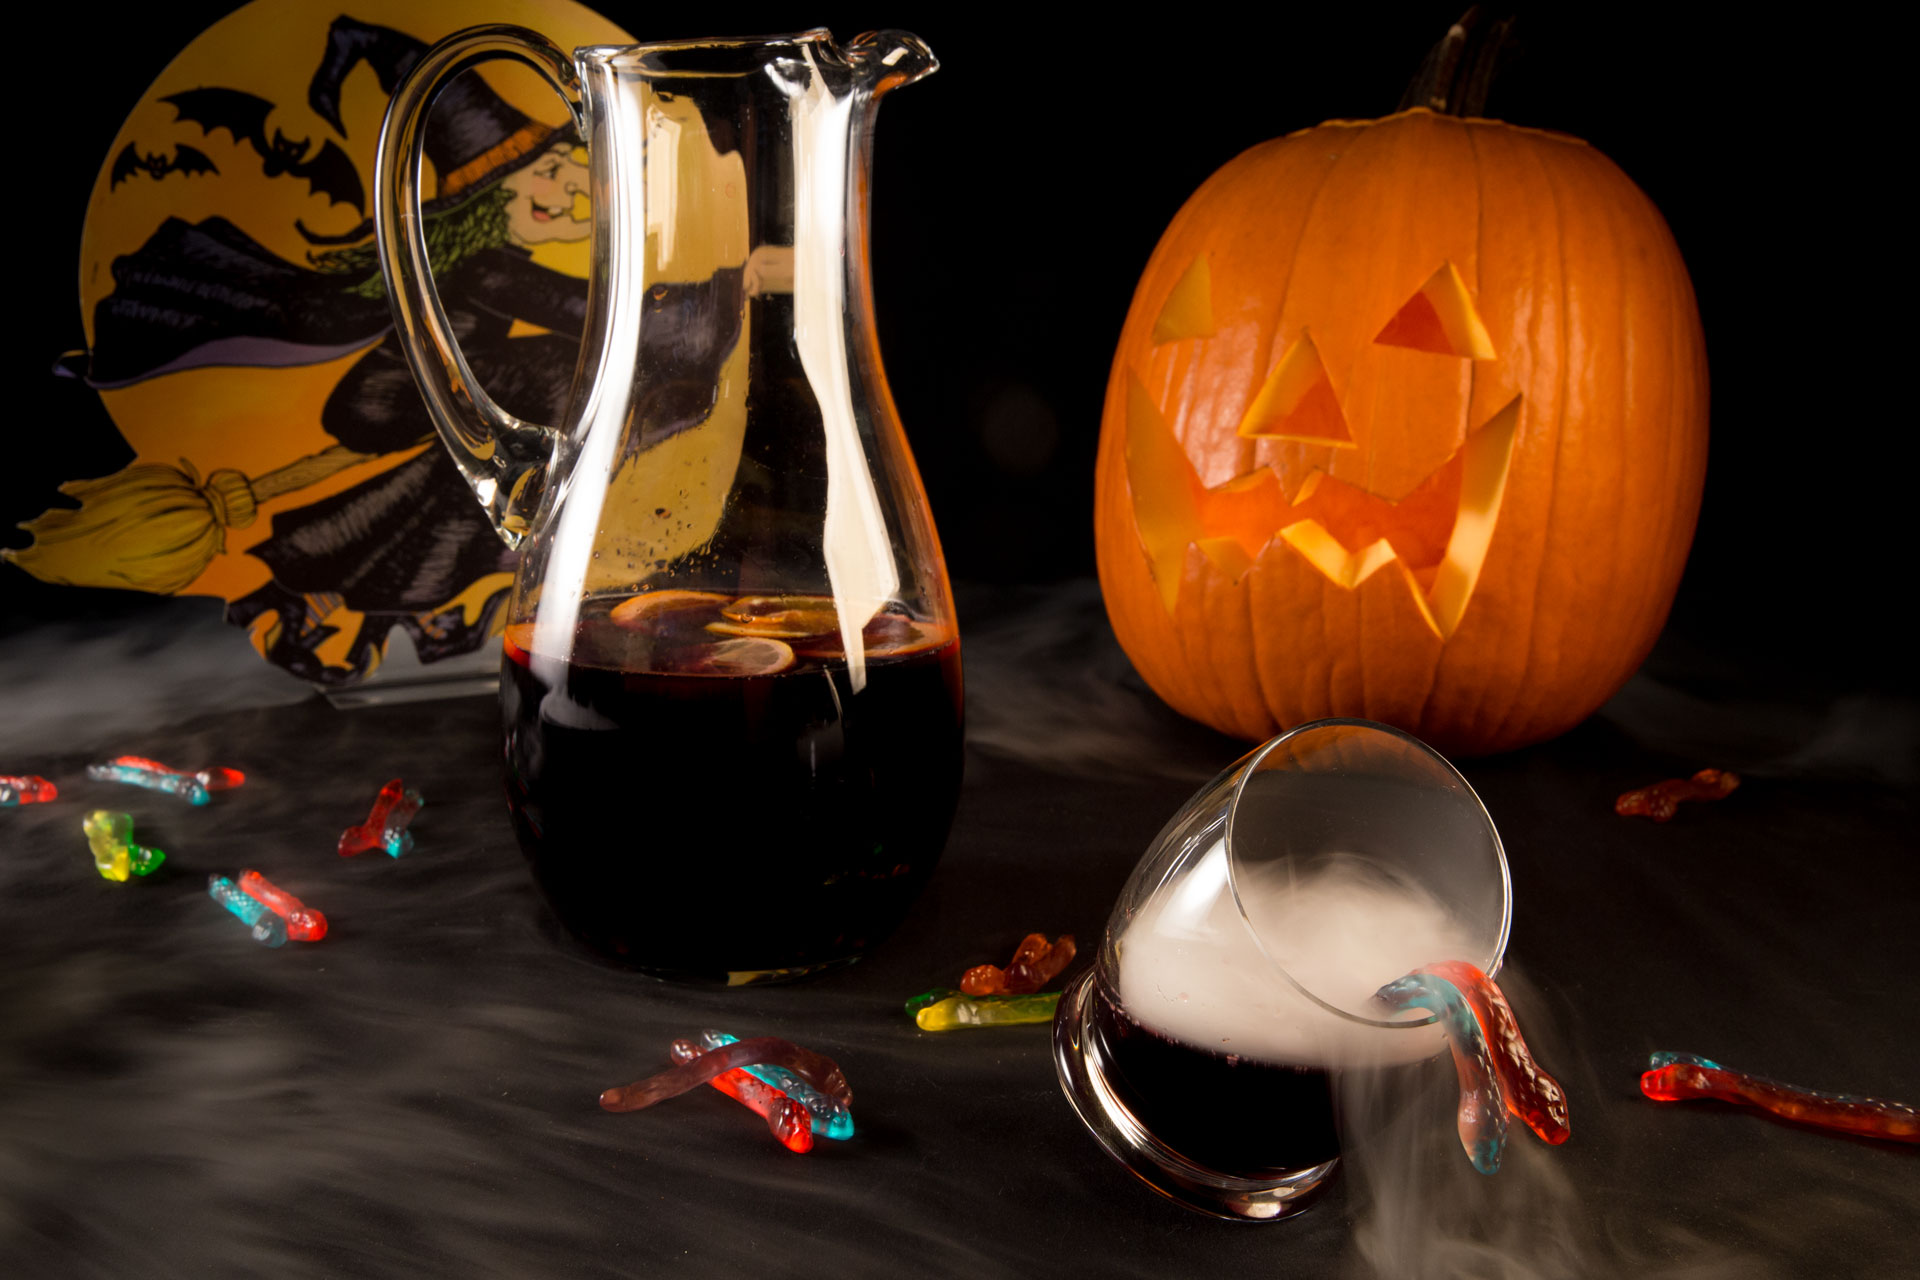 A spooky twist on a fall favorite, this Black Lagoon Sangria is equally tangy and sweet, thanks to raspberries, blackberries, pomegranate juice and lemonade.